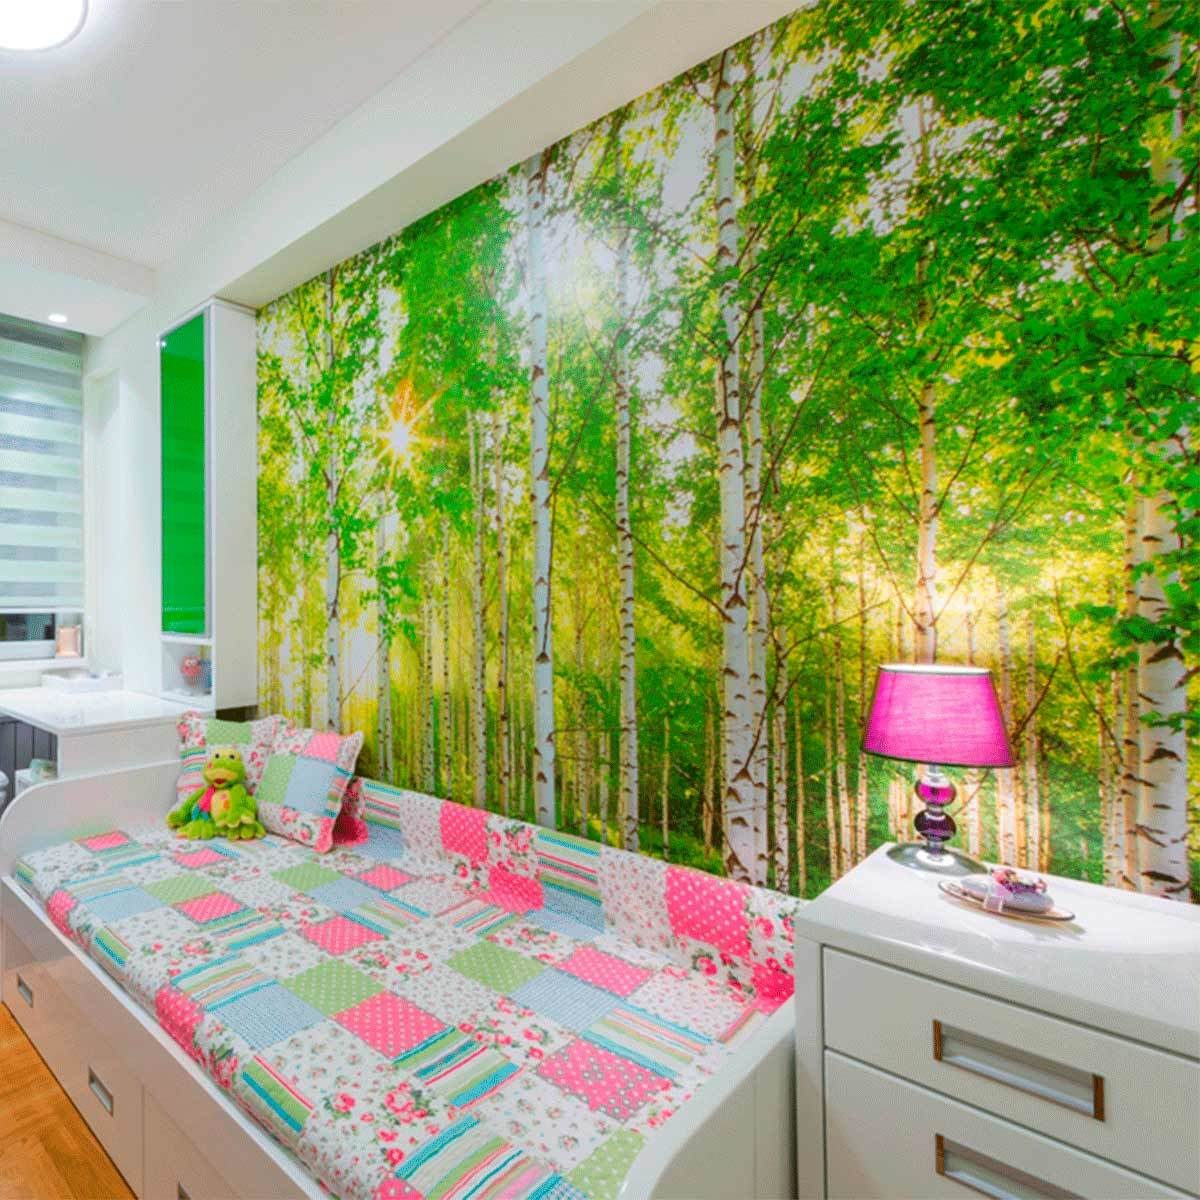 Create a Mural in the Bedroom